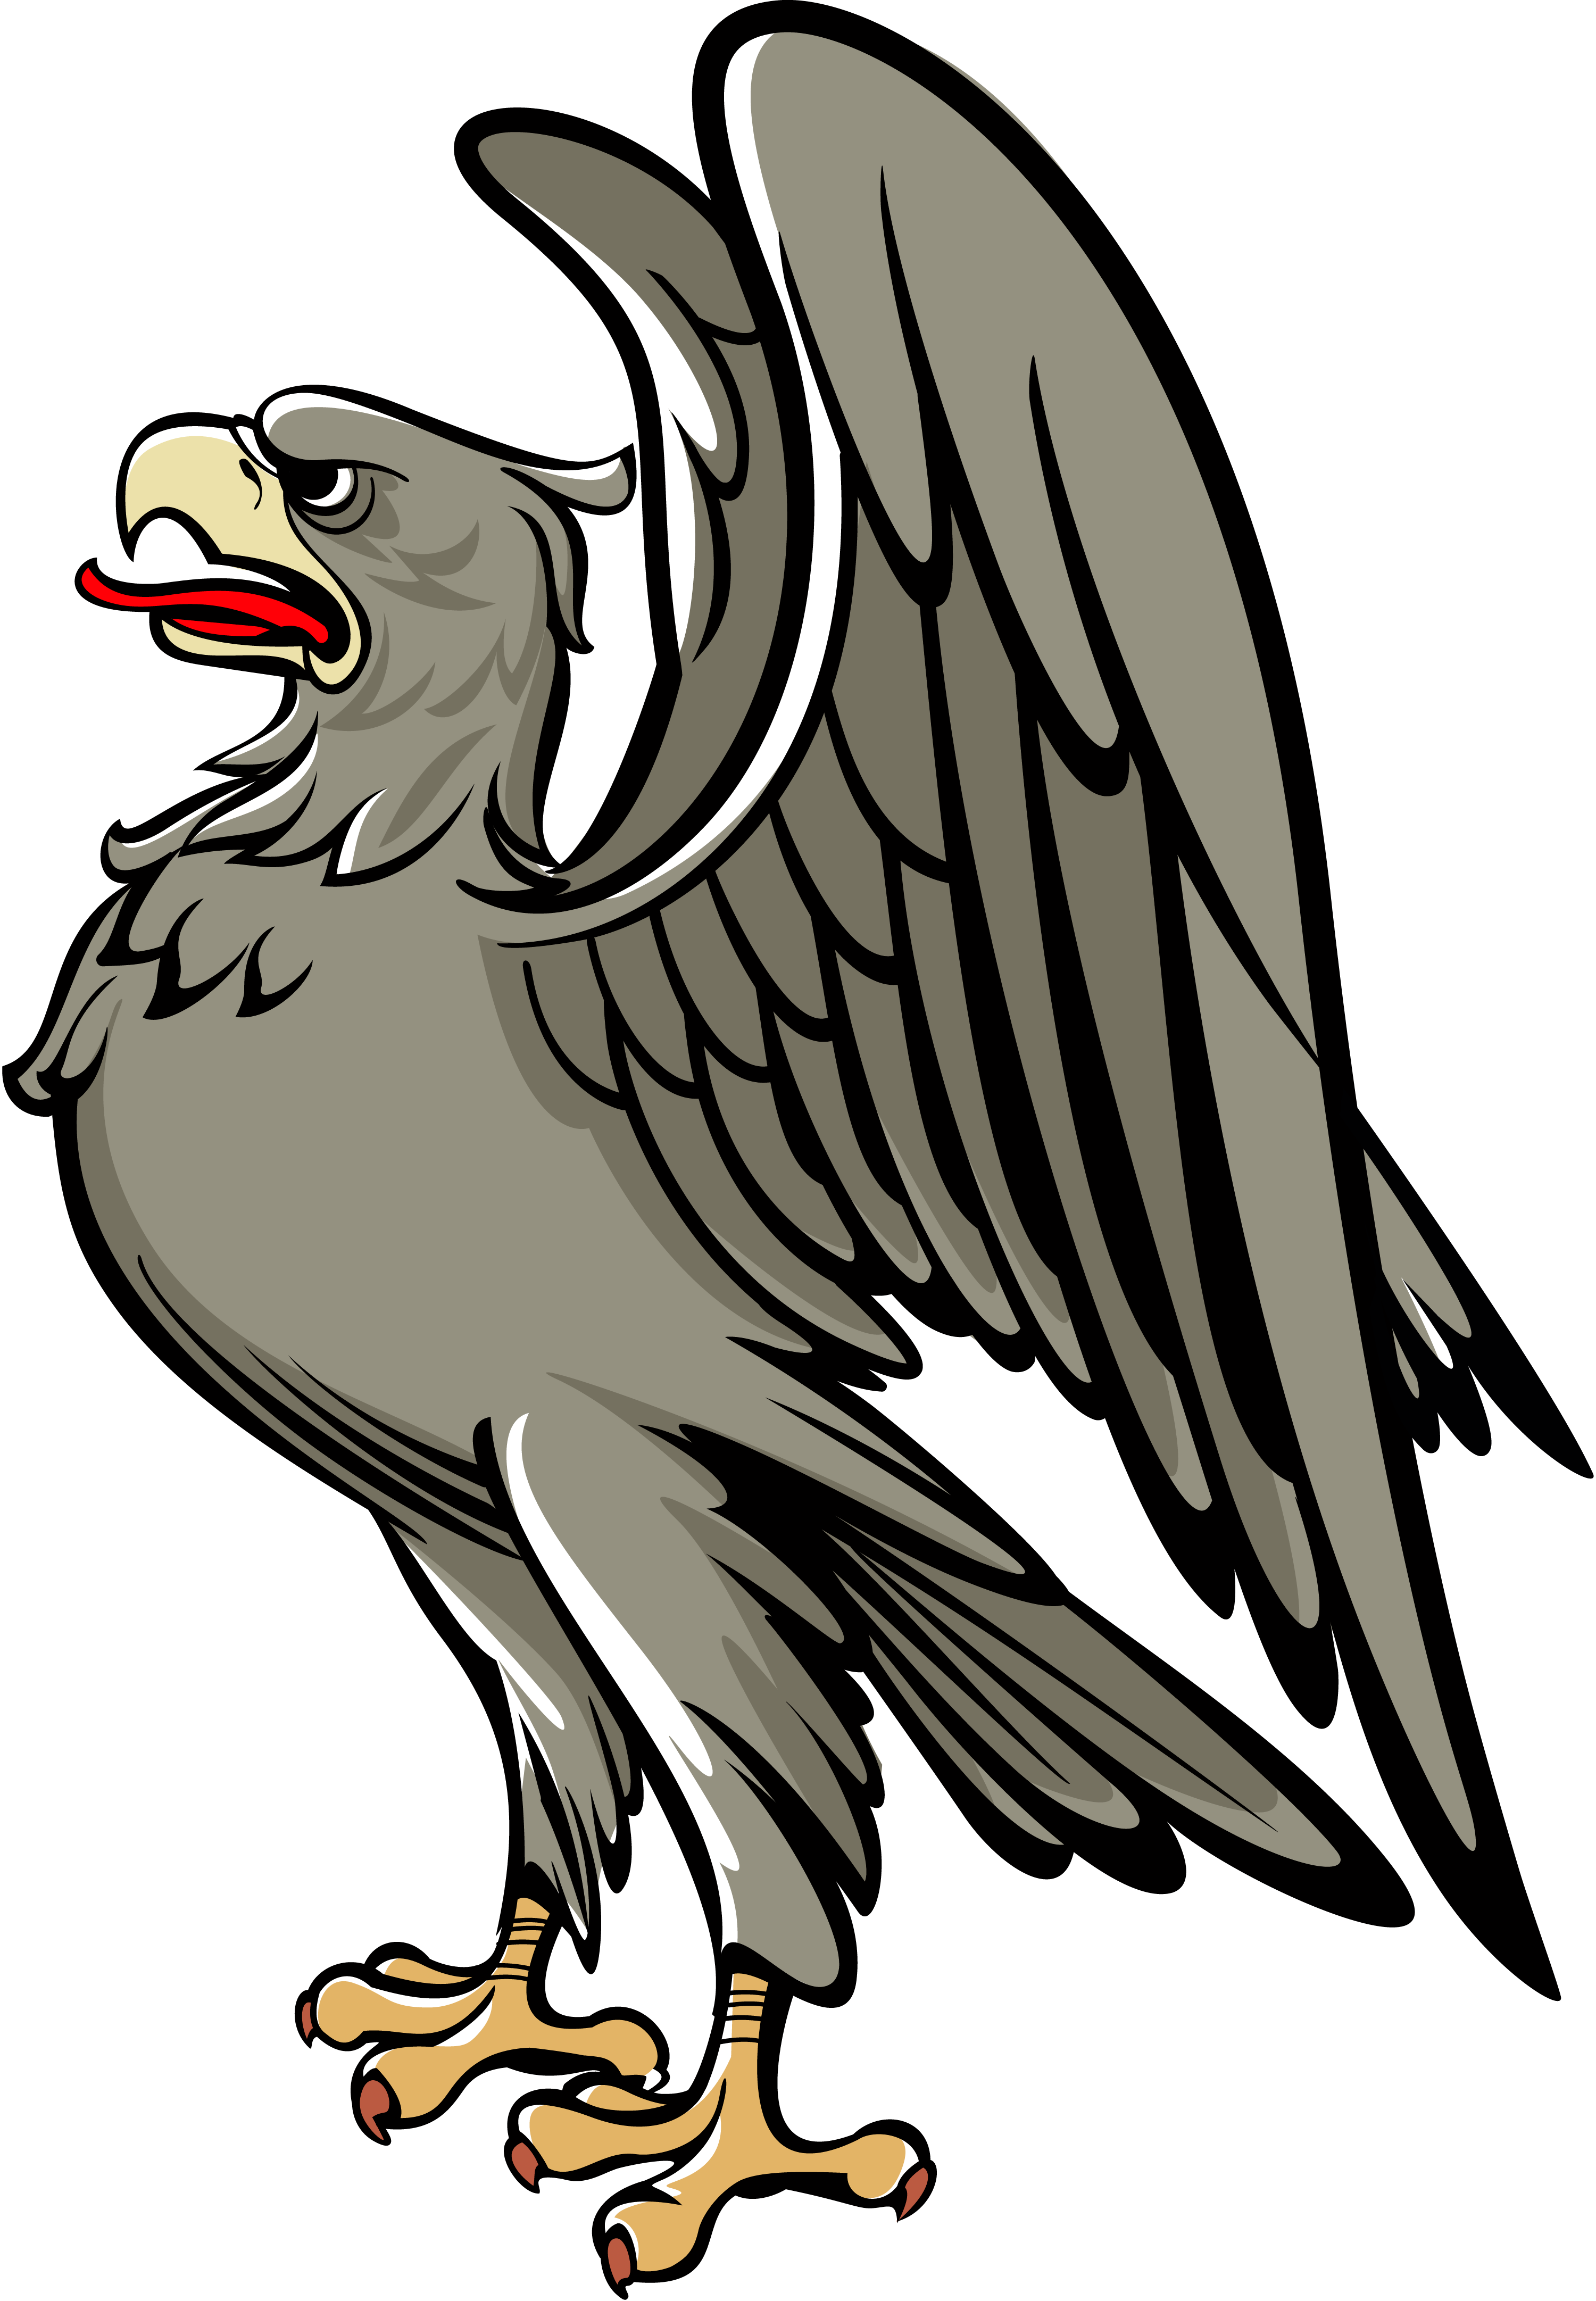 Family Crest Symbols And Their Meanings